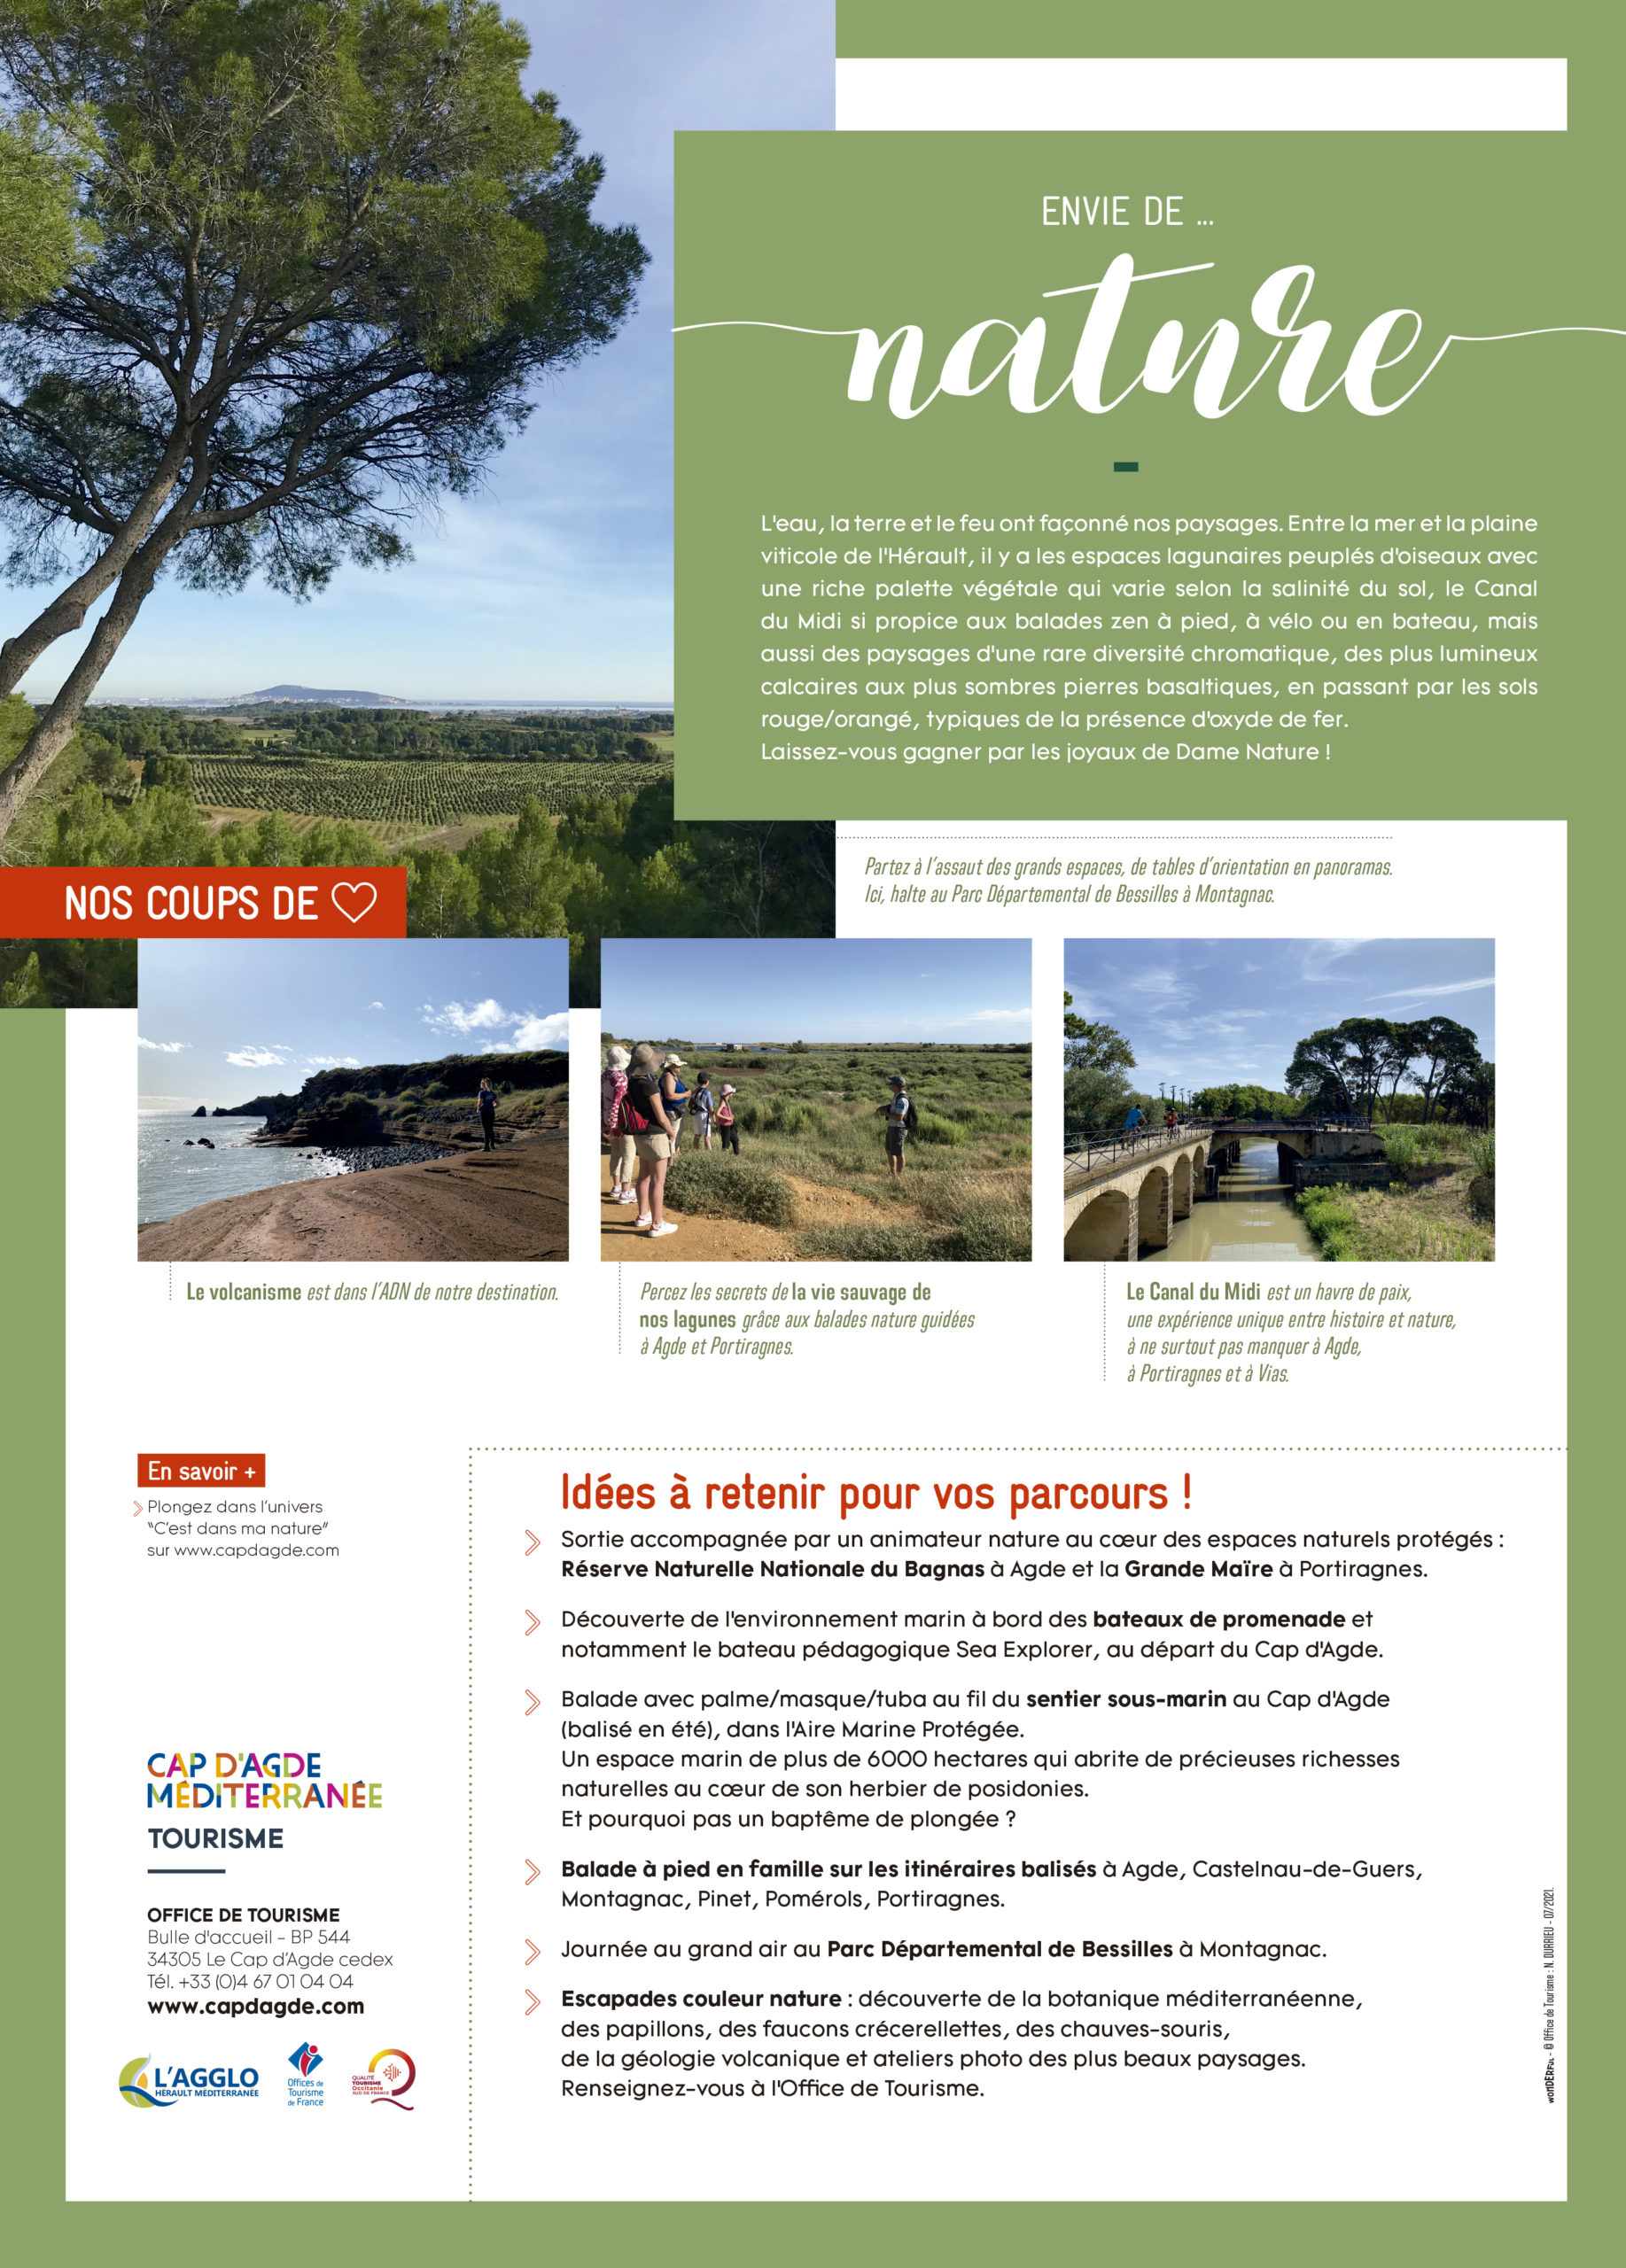 CAPINFOS-Nature-240x335mm-2021-07.indd